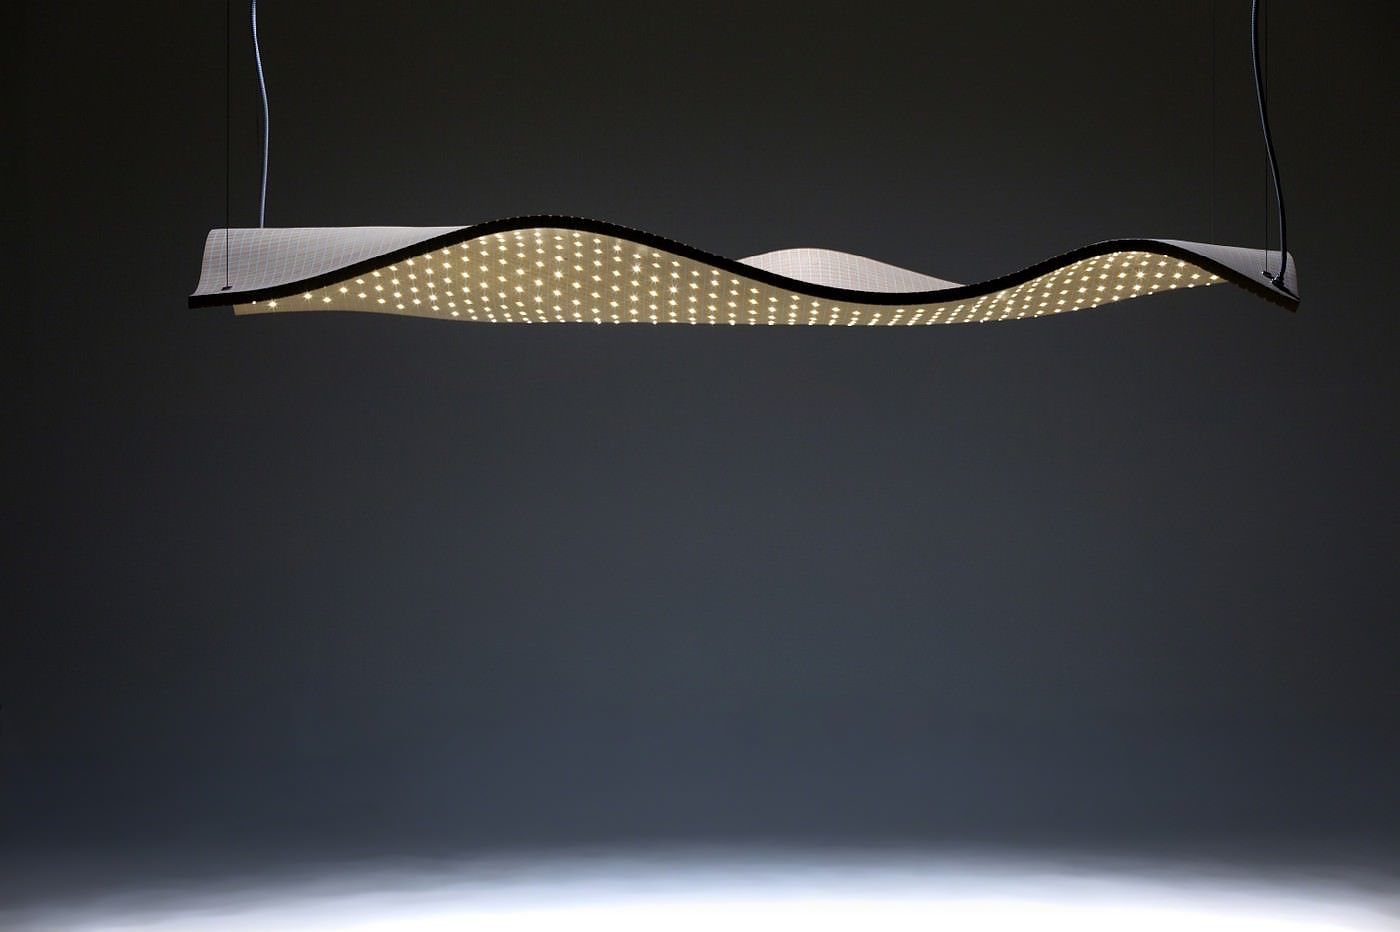 Grid Series Sculptural Wooden Lights by Maarten De Ceulaer